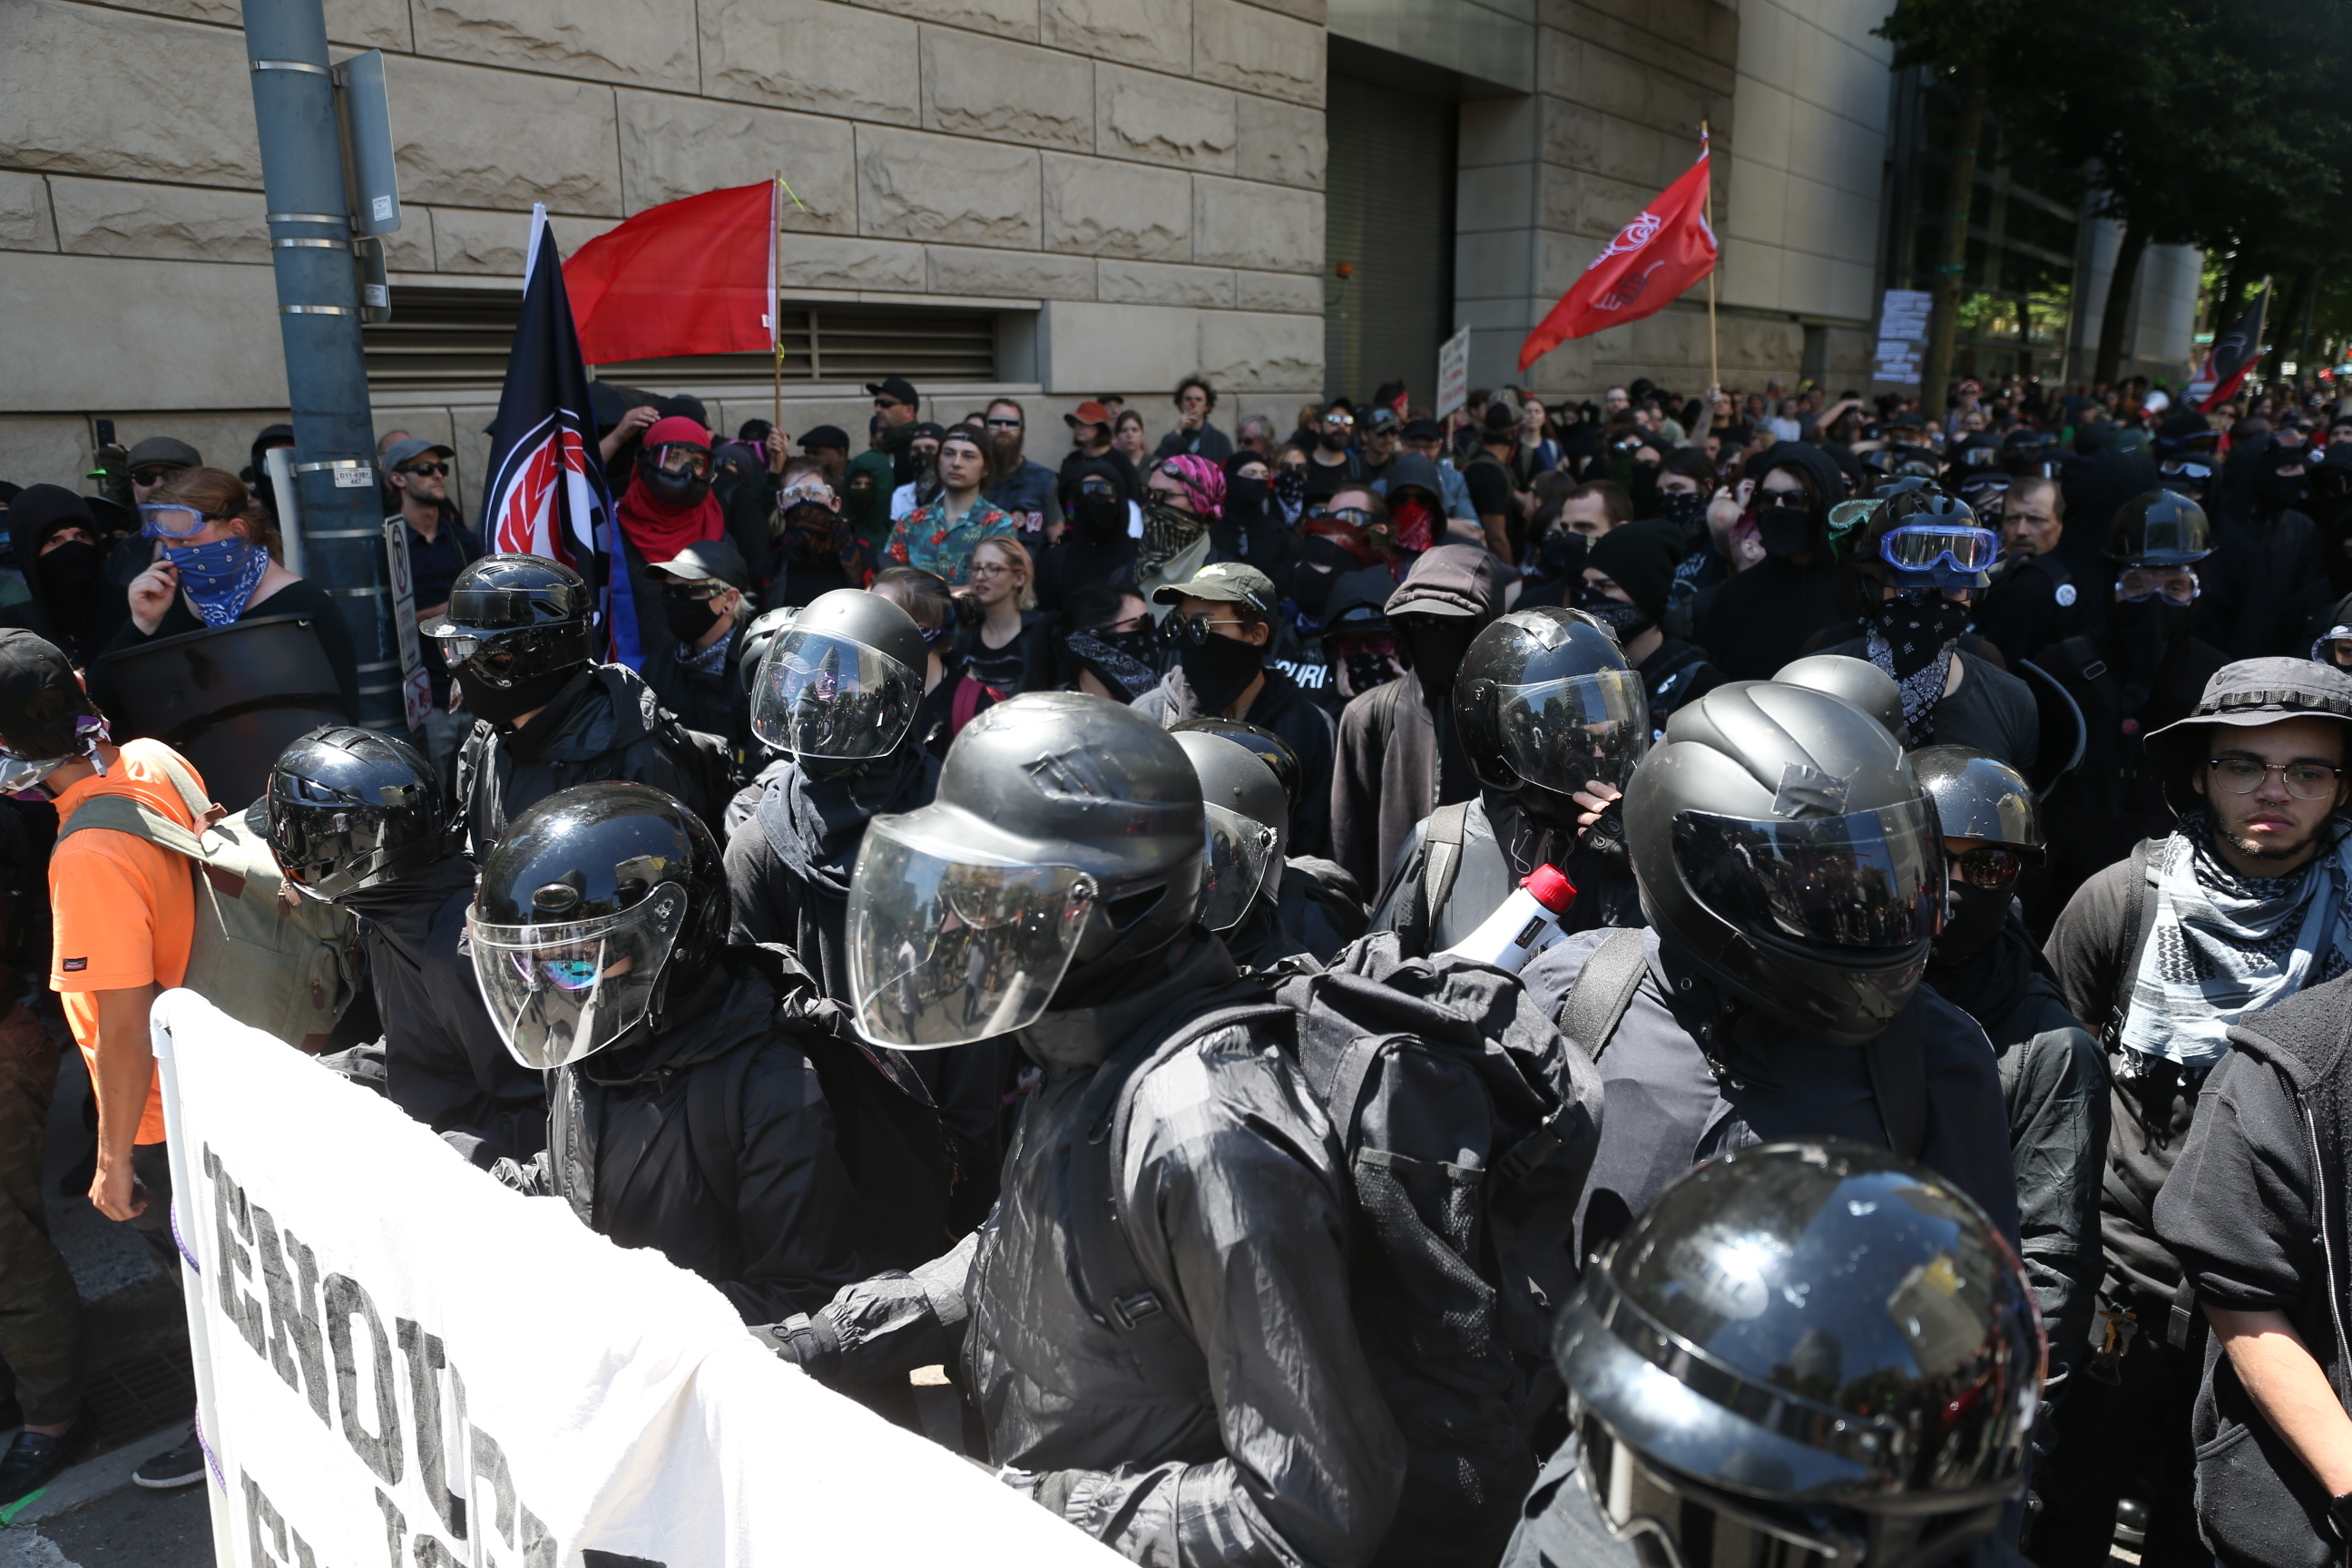 Marches by rival groups lead to clashes; 3 people arrested